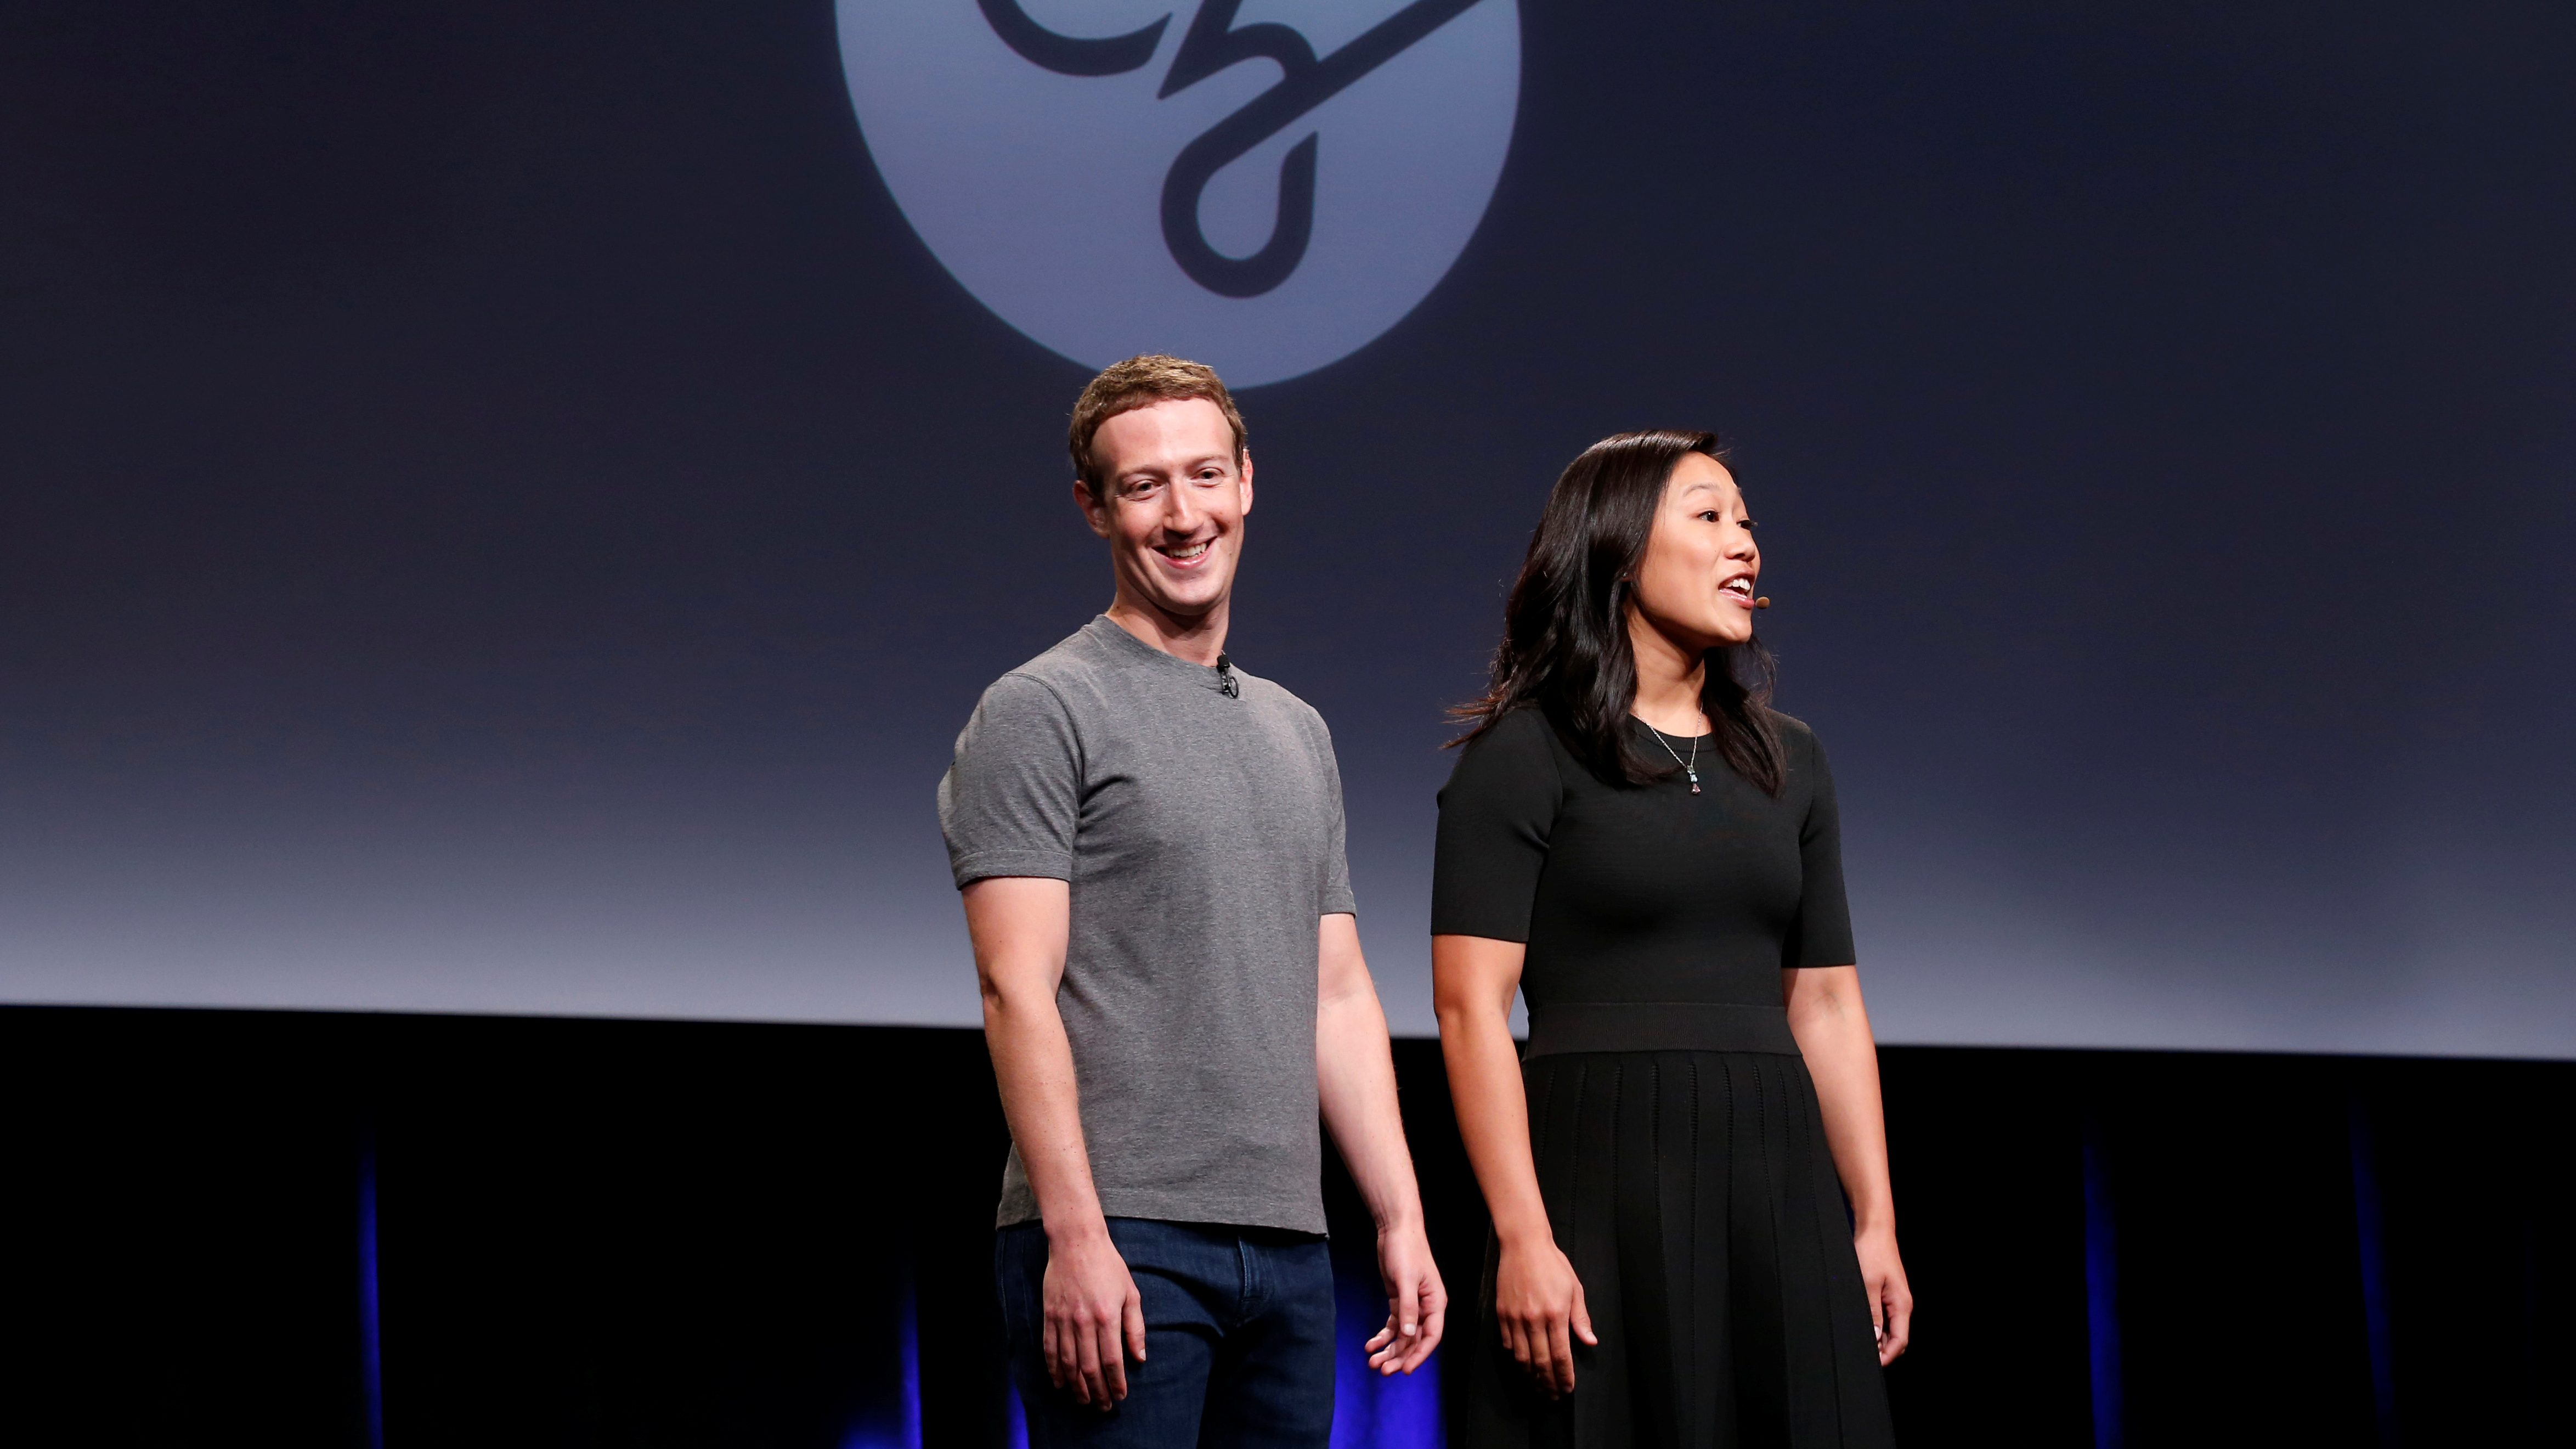 """Priscilla Chan and her husband Mark Zuckerberg announce the Chan Zuckerberg Initiative to """"cure, prevent or manage all disease"""" by the end of the century during a news conference at UCSF Mission Bay in San Francisco, California, U.S. September 21, 2016."""